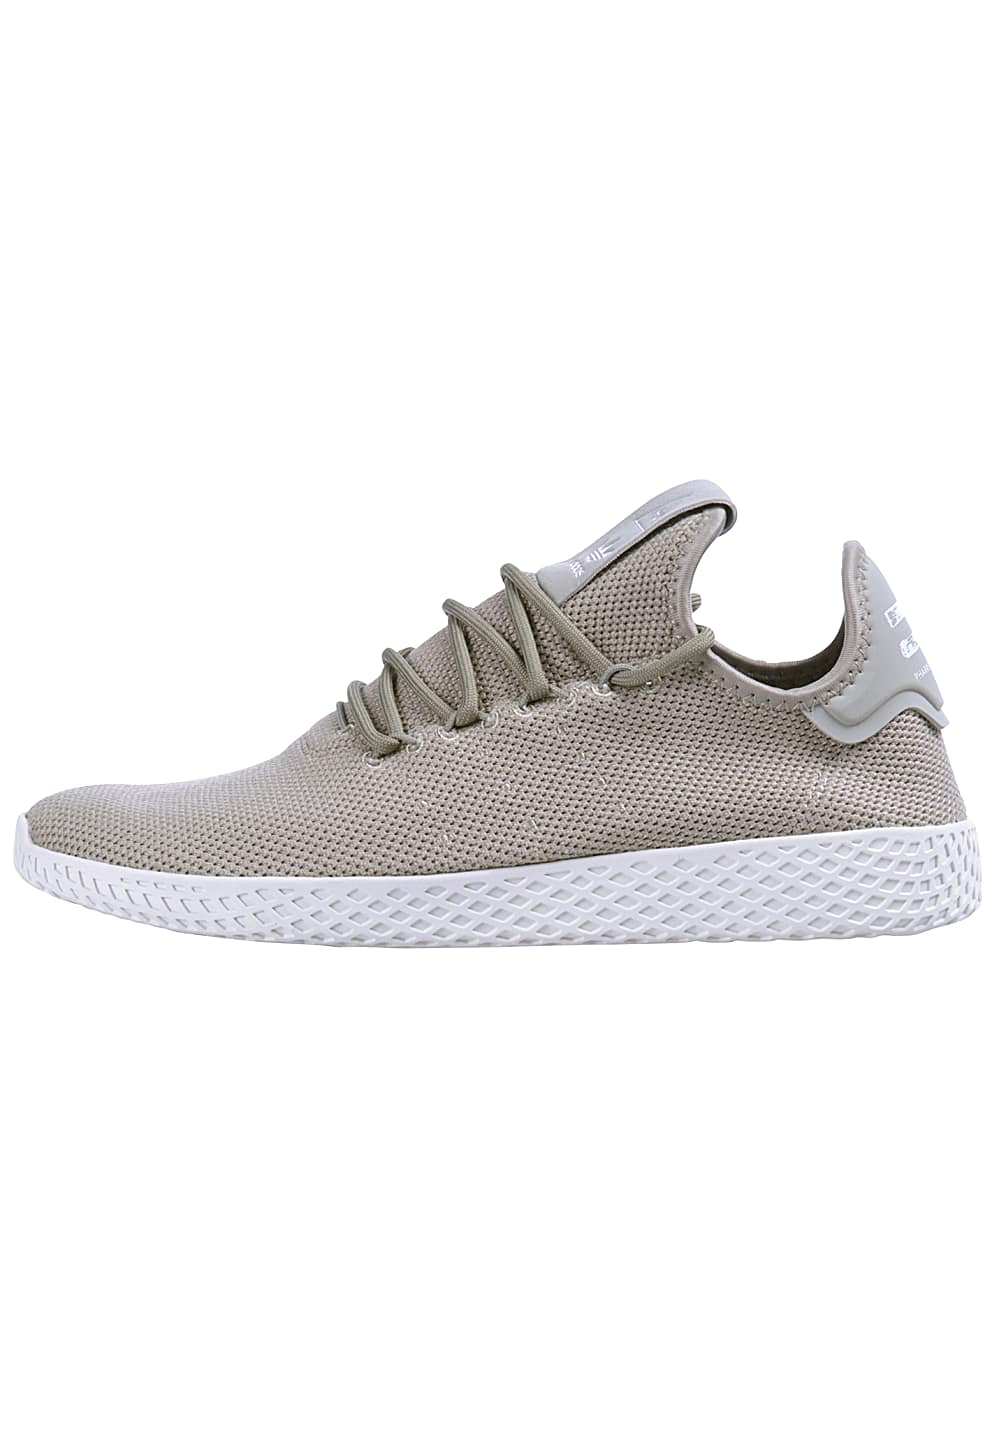 adidas Originals Pharrell Williams Tennis Hu - Sneaker - Beige